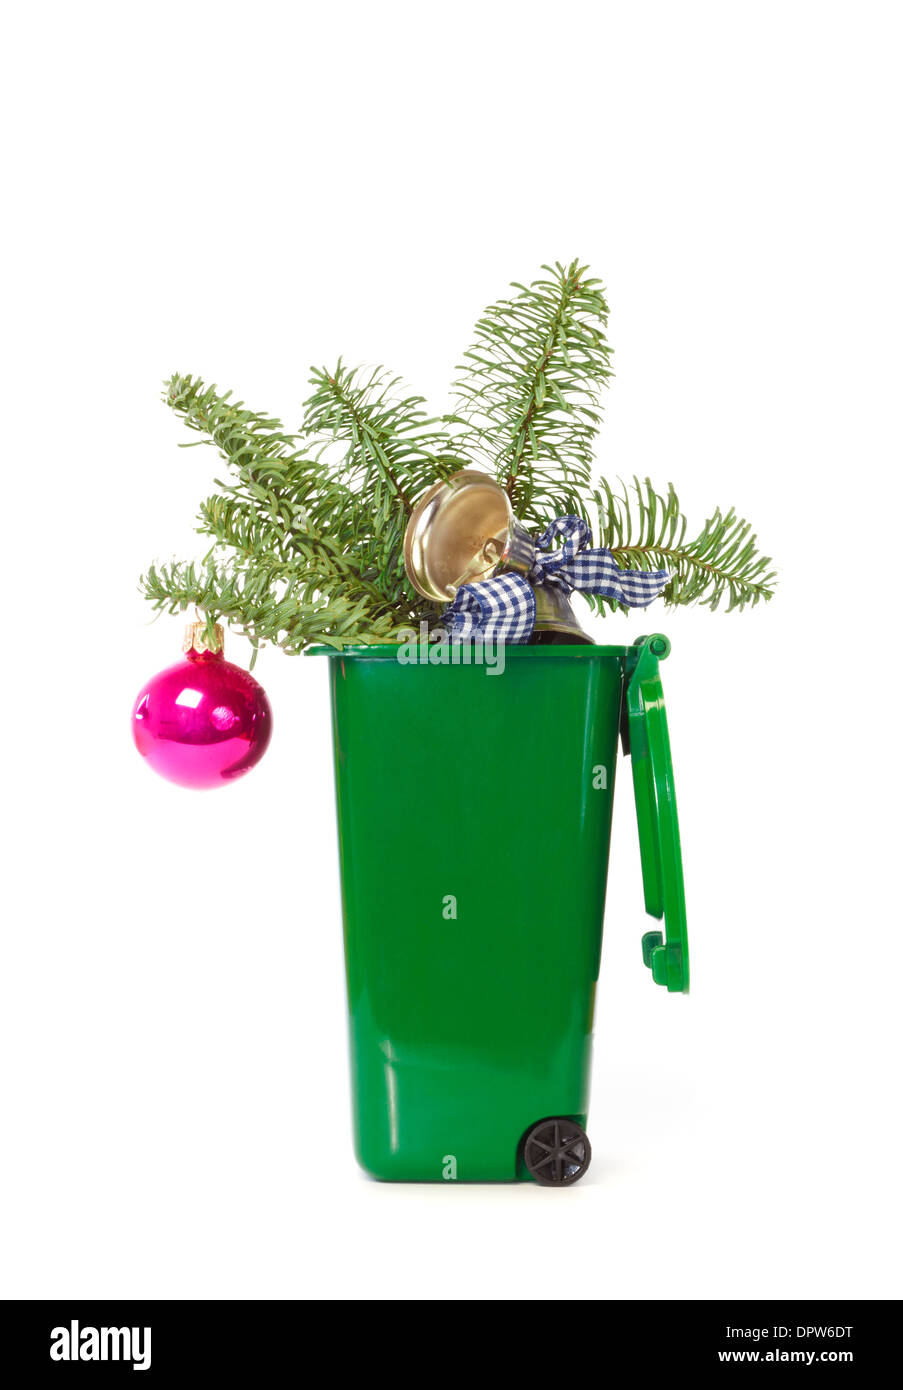 Christmas decorations in the green wheelie bin against white background - Stock Image